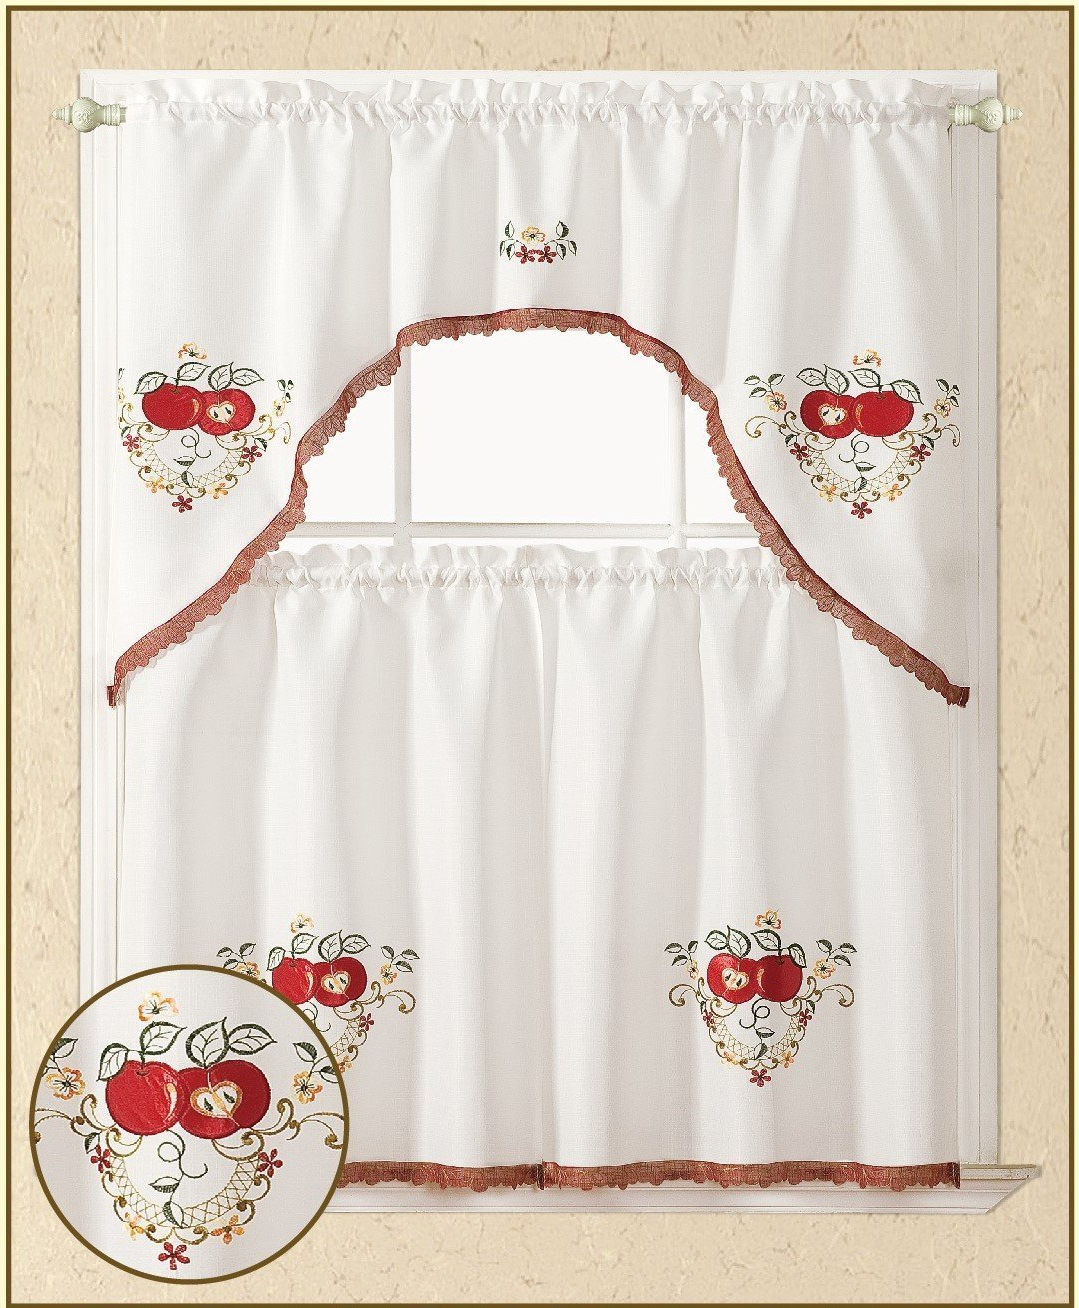 Delicious Apples Kitchen Curtain Tier And Valance Sets Intended For Current All American Collection 3Pc Apples Kitchen Curtain Set (View 4 of 20)